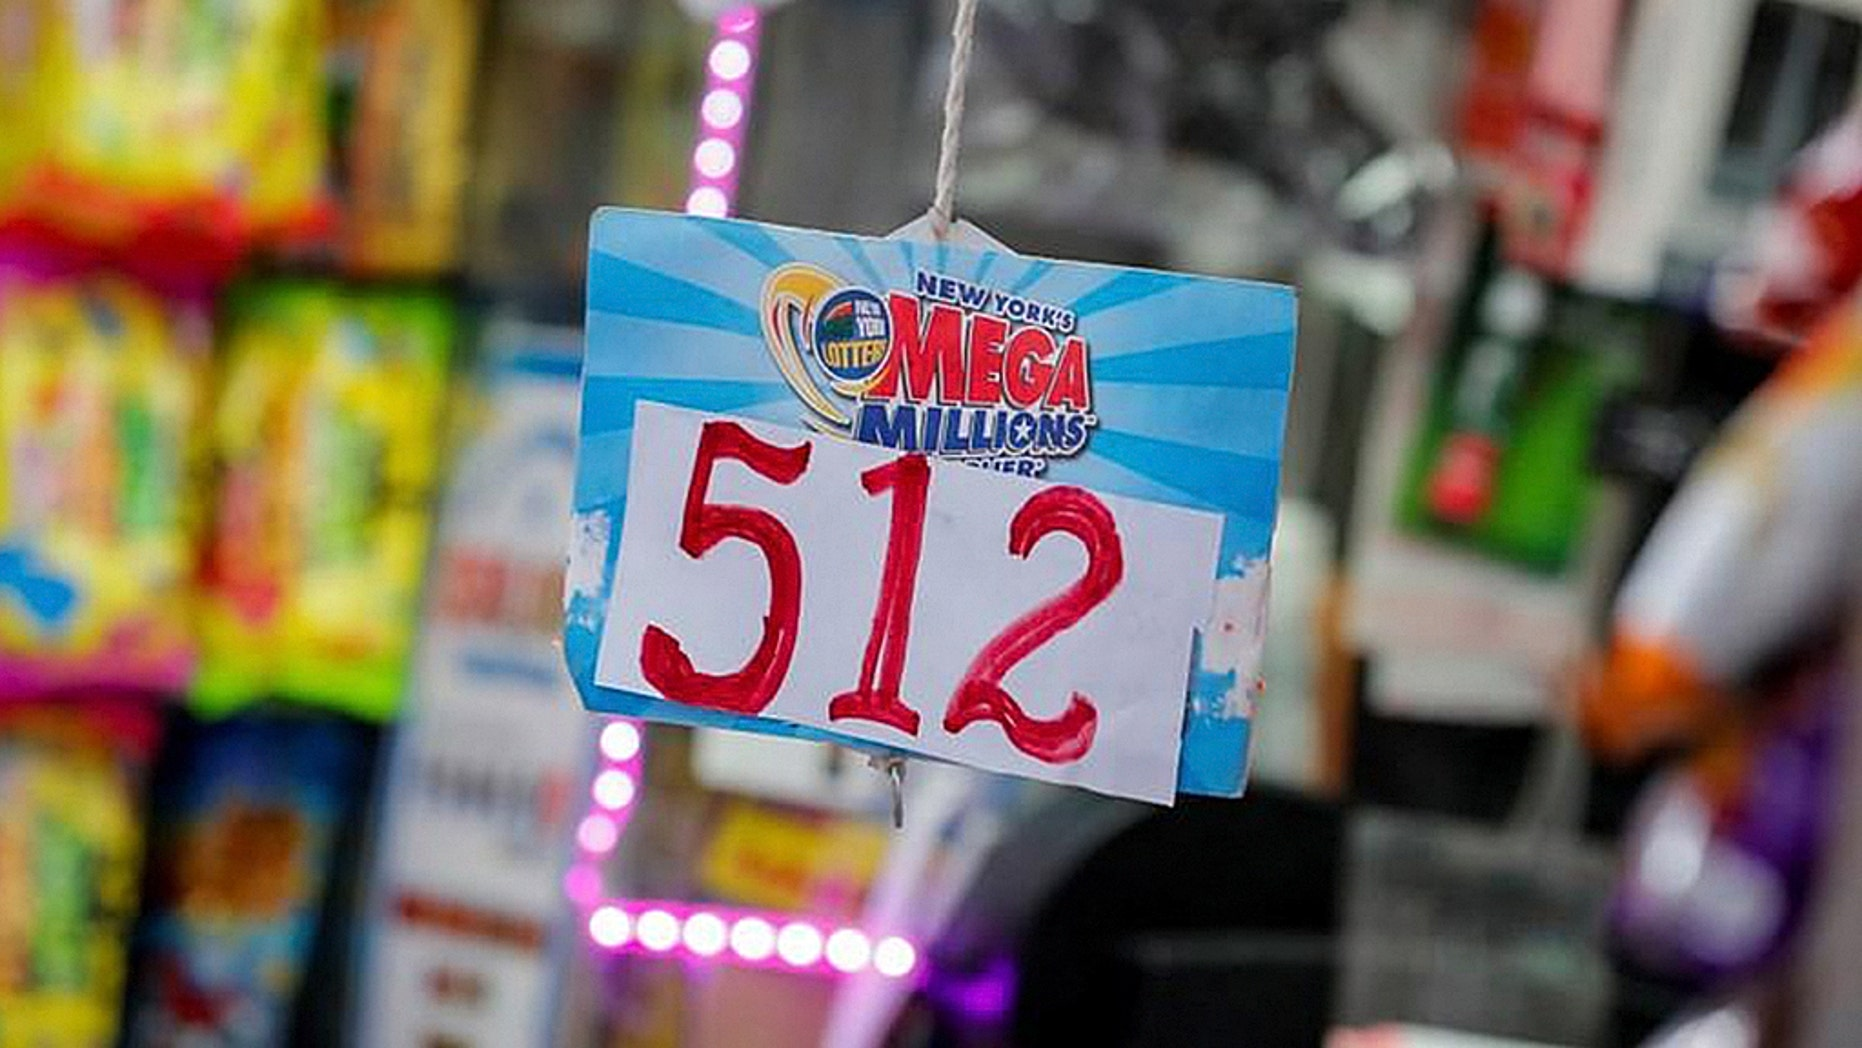 The single-winning Mega Millions ticket was bought in San Jose, California, according to lottery officials.